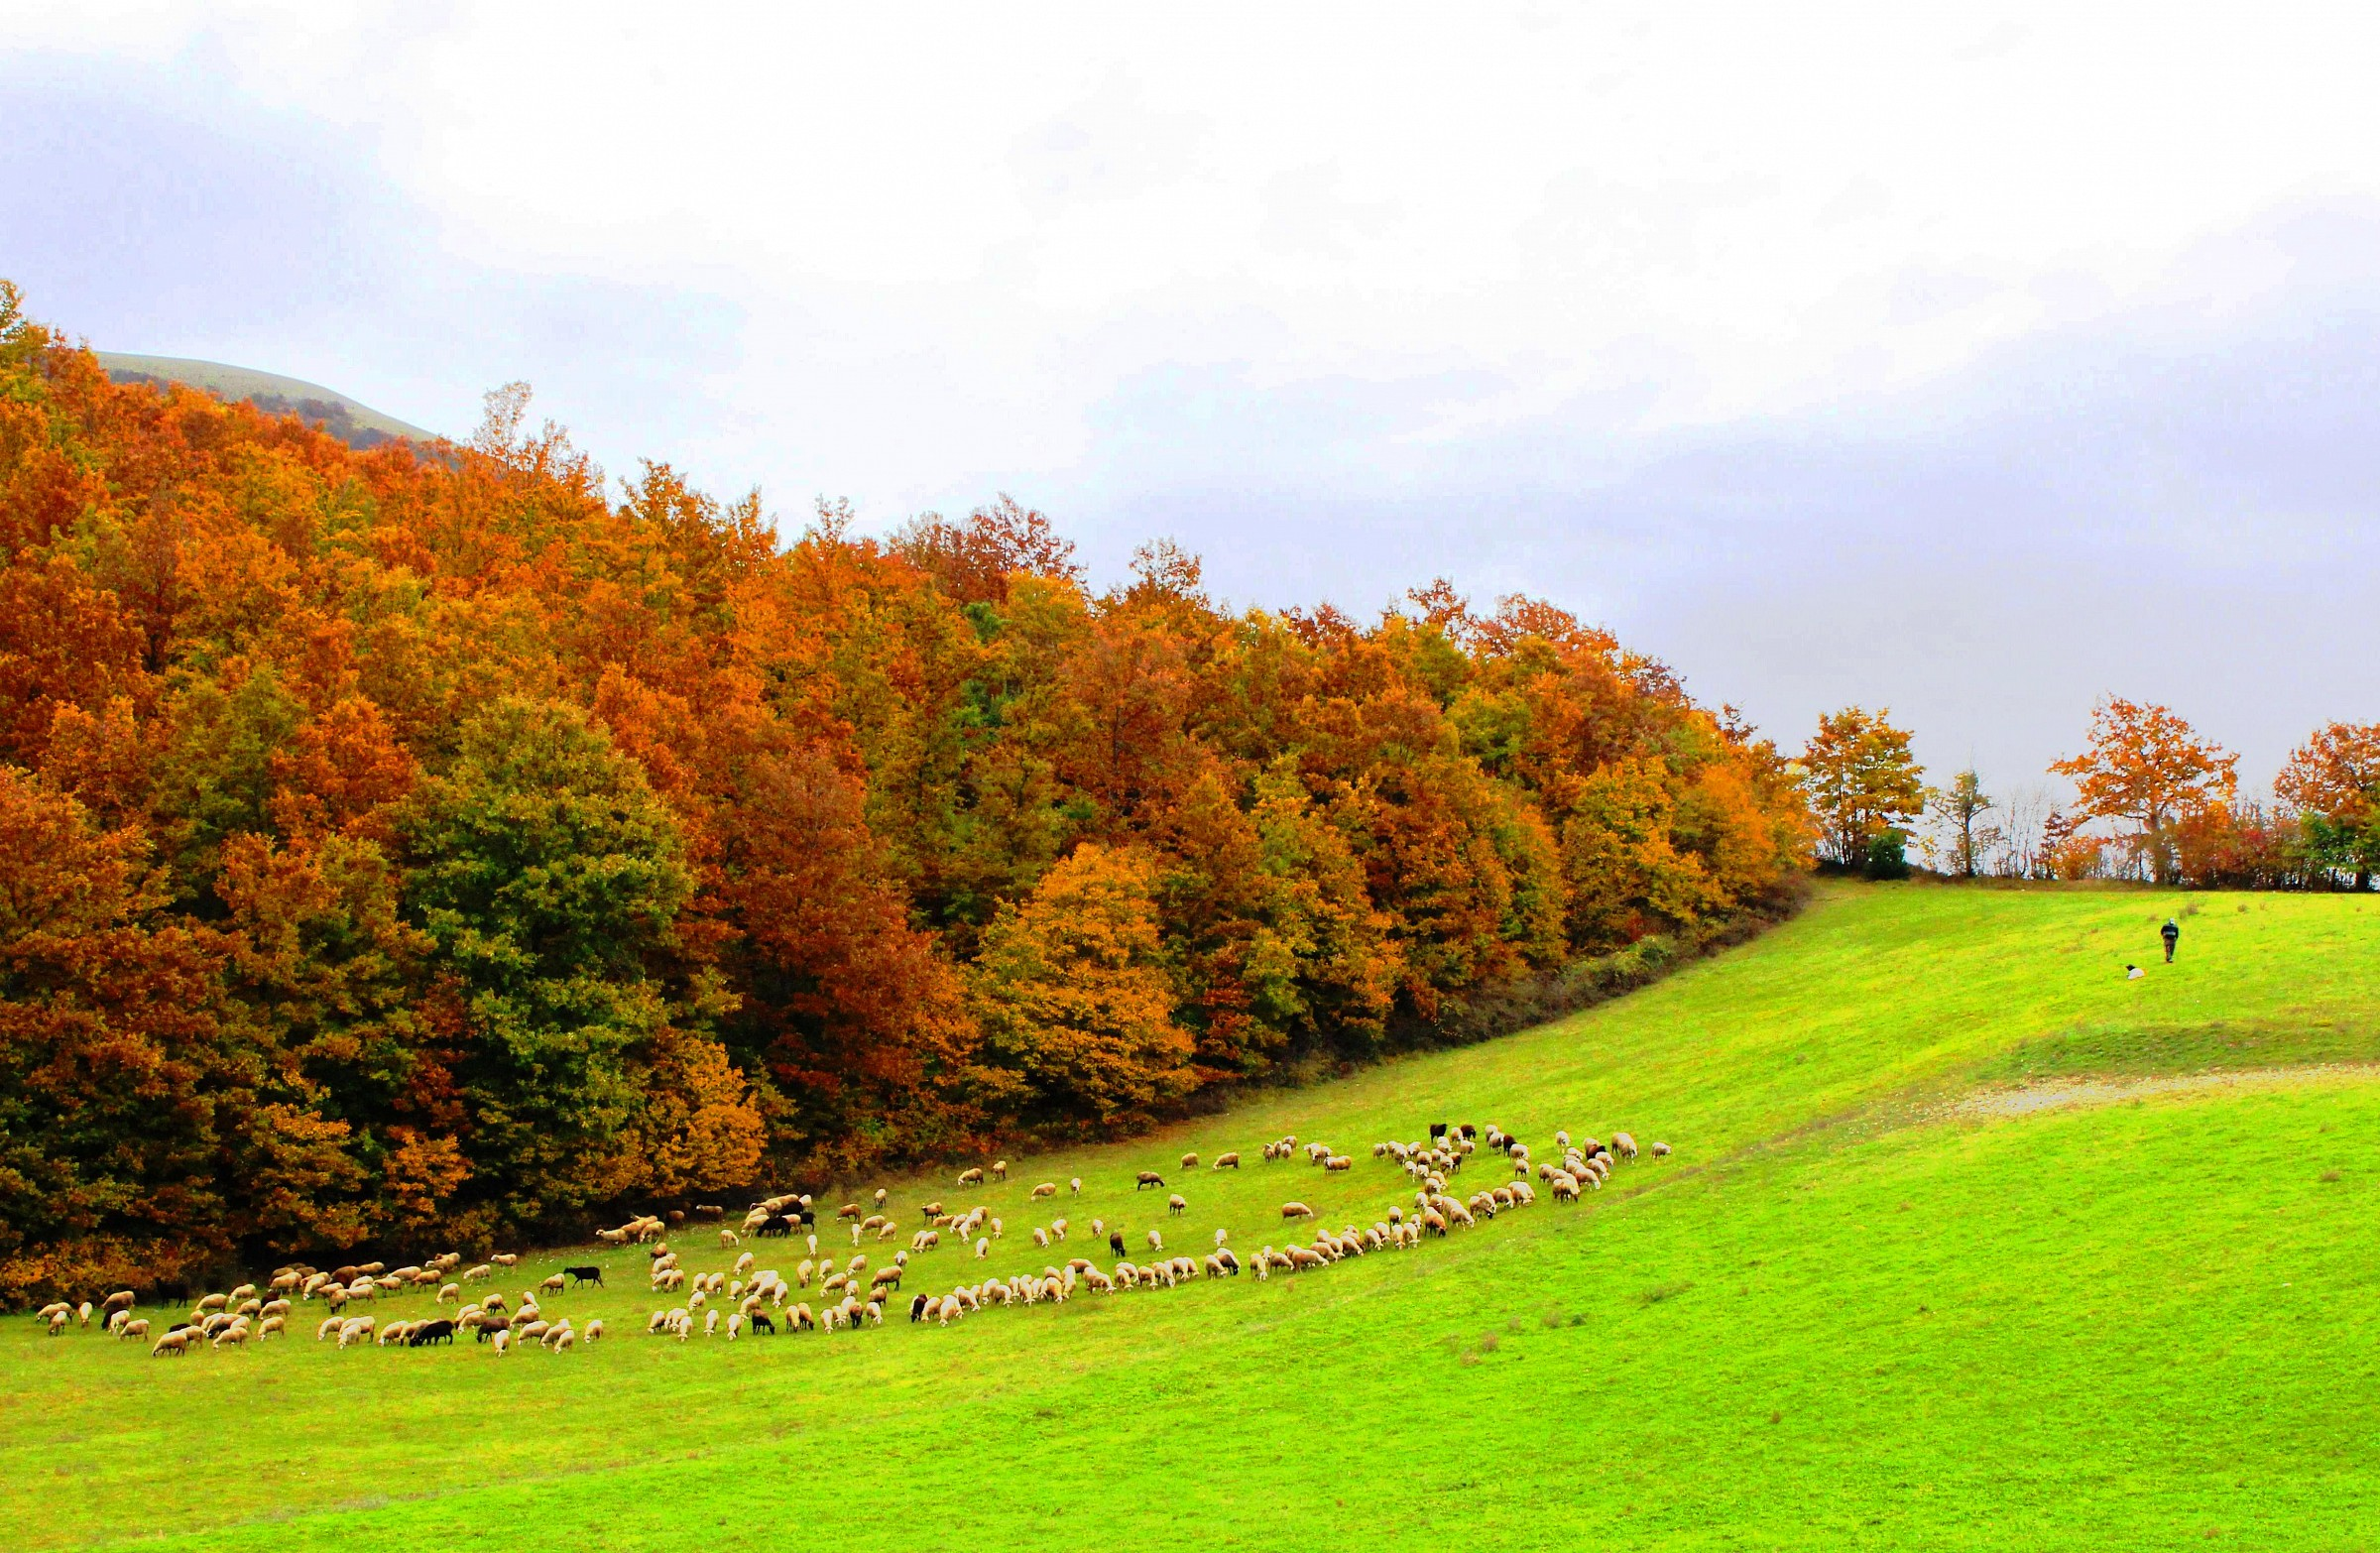 Yellow leaves and sheep .........